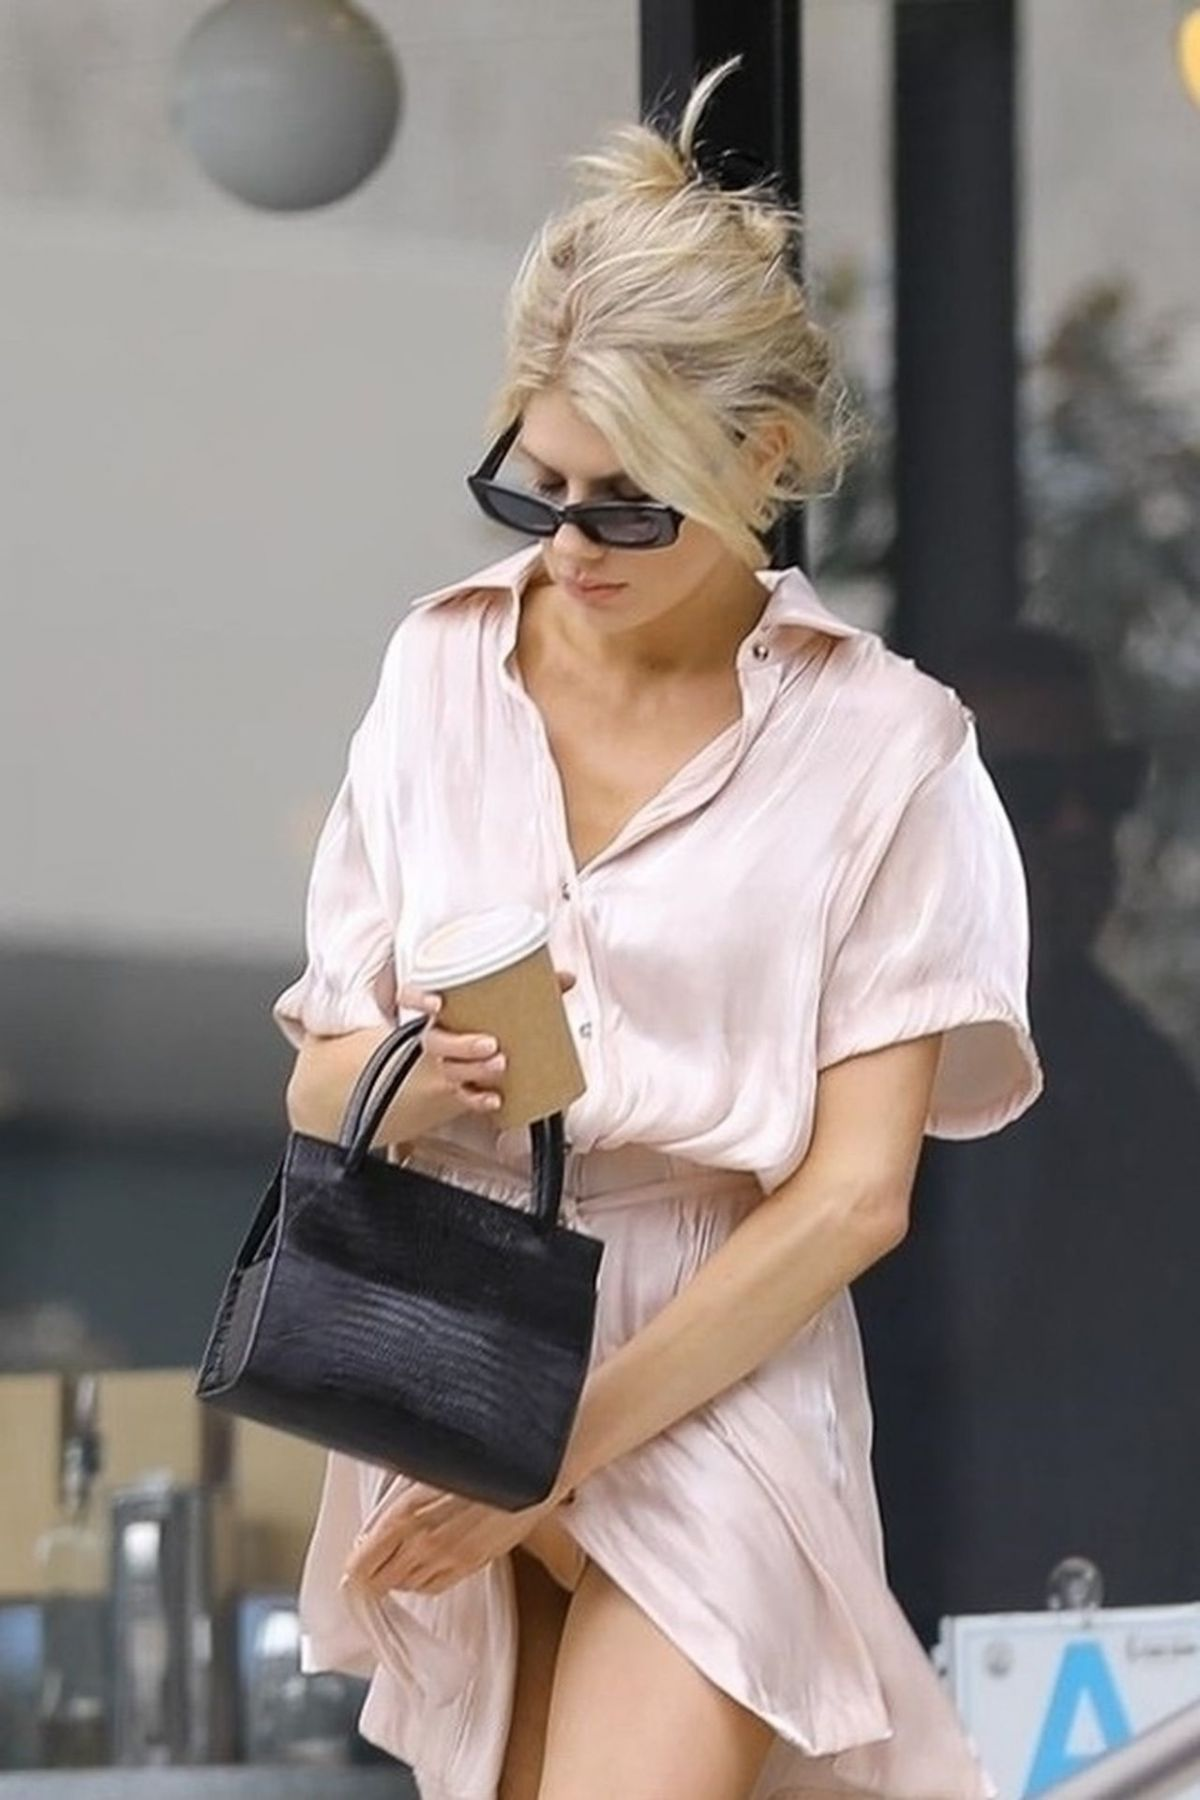 charlotte mckinney out and about in los angeles 04052019